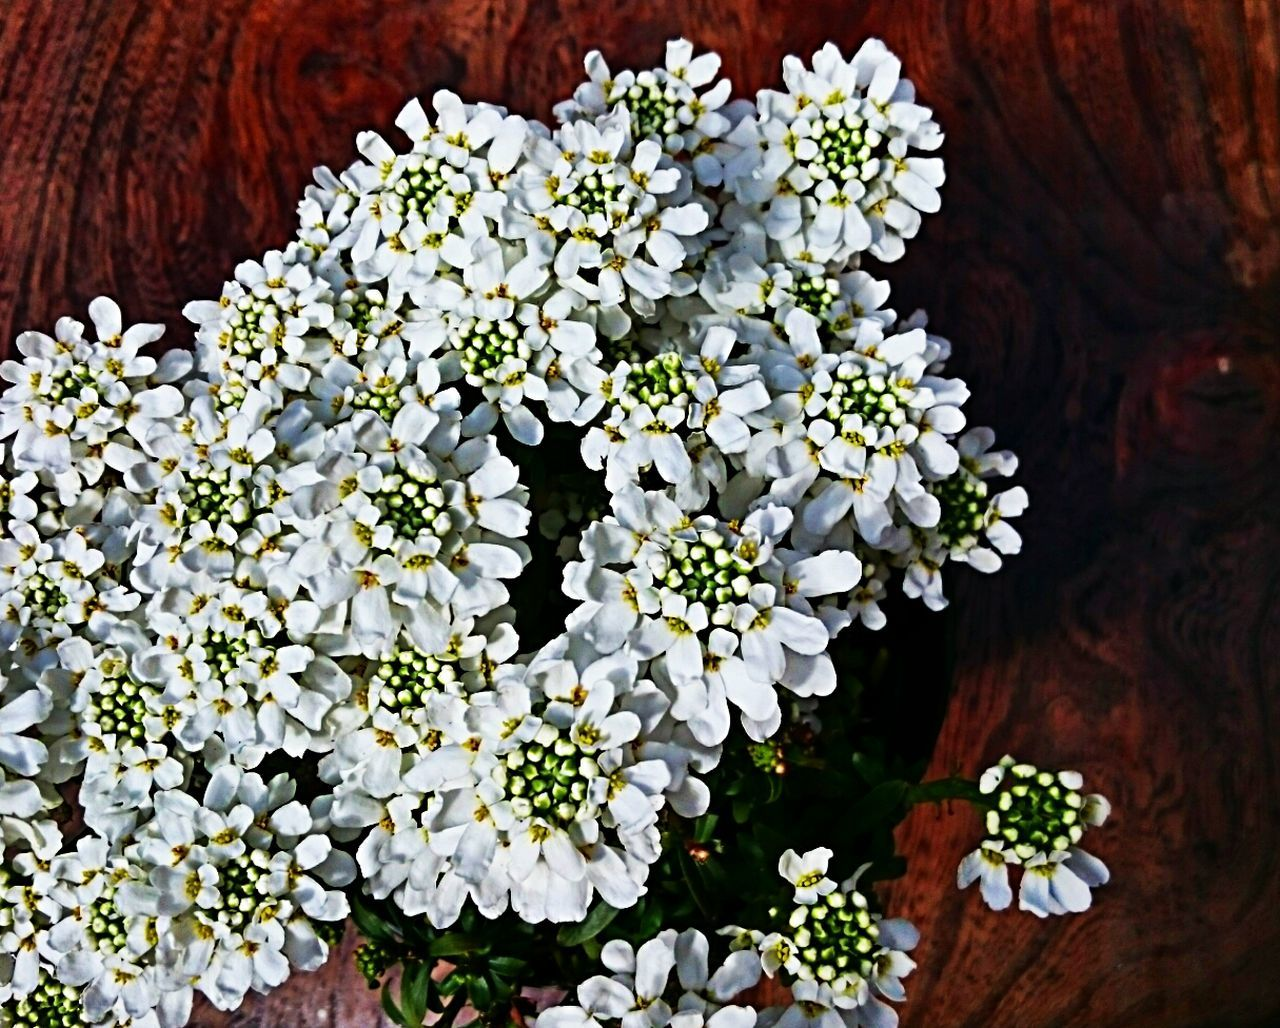 Flower Collection White Flowers Beauty In Nature Blossoms  Simple Beauty Garden Flowers Cluster Of Flowers